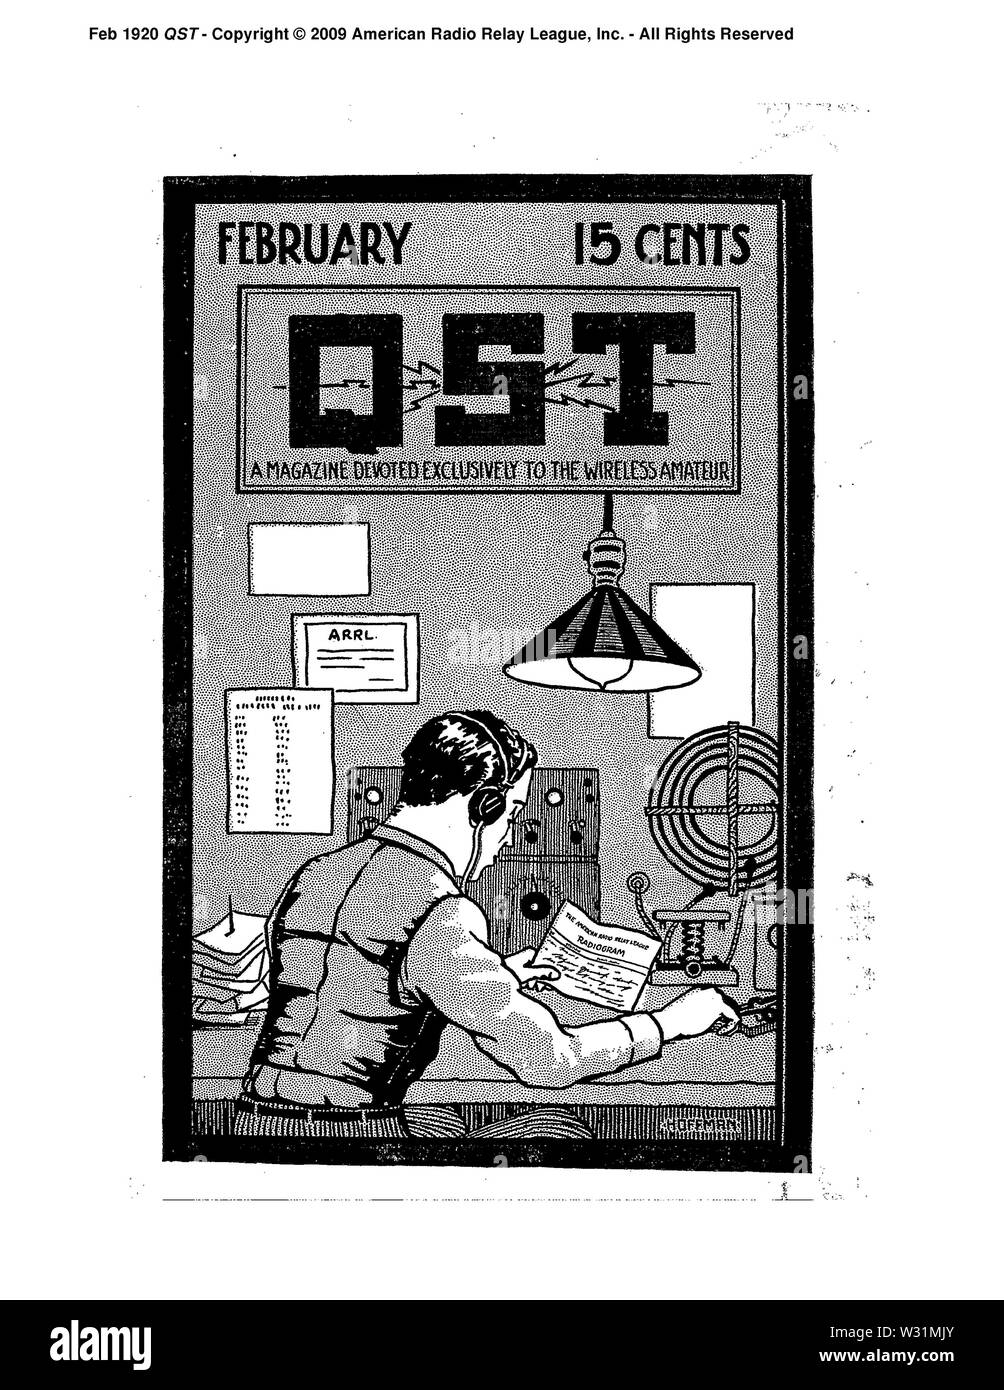 Qst Stock Photos & Qst Stock Images - Alamy